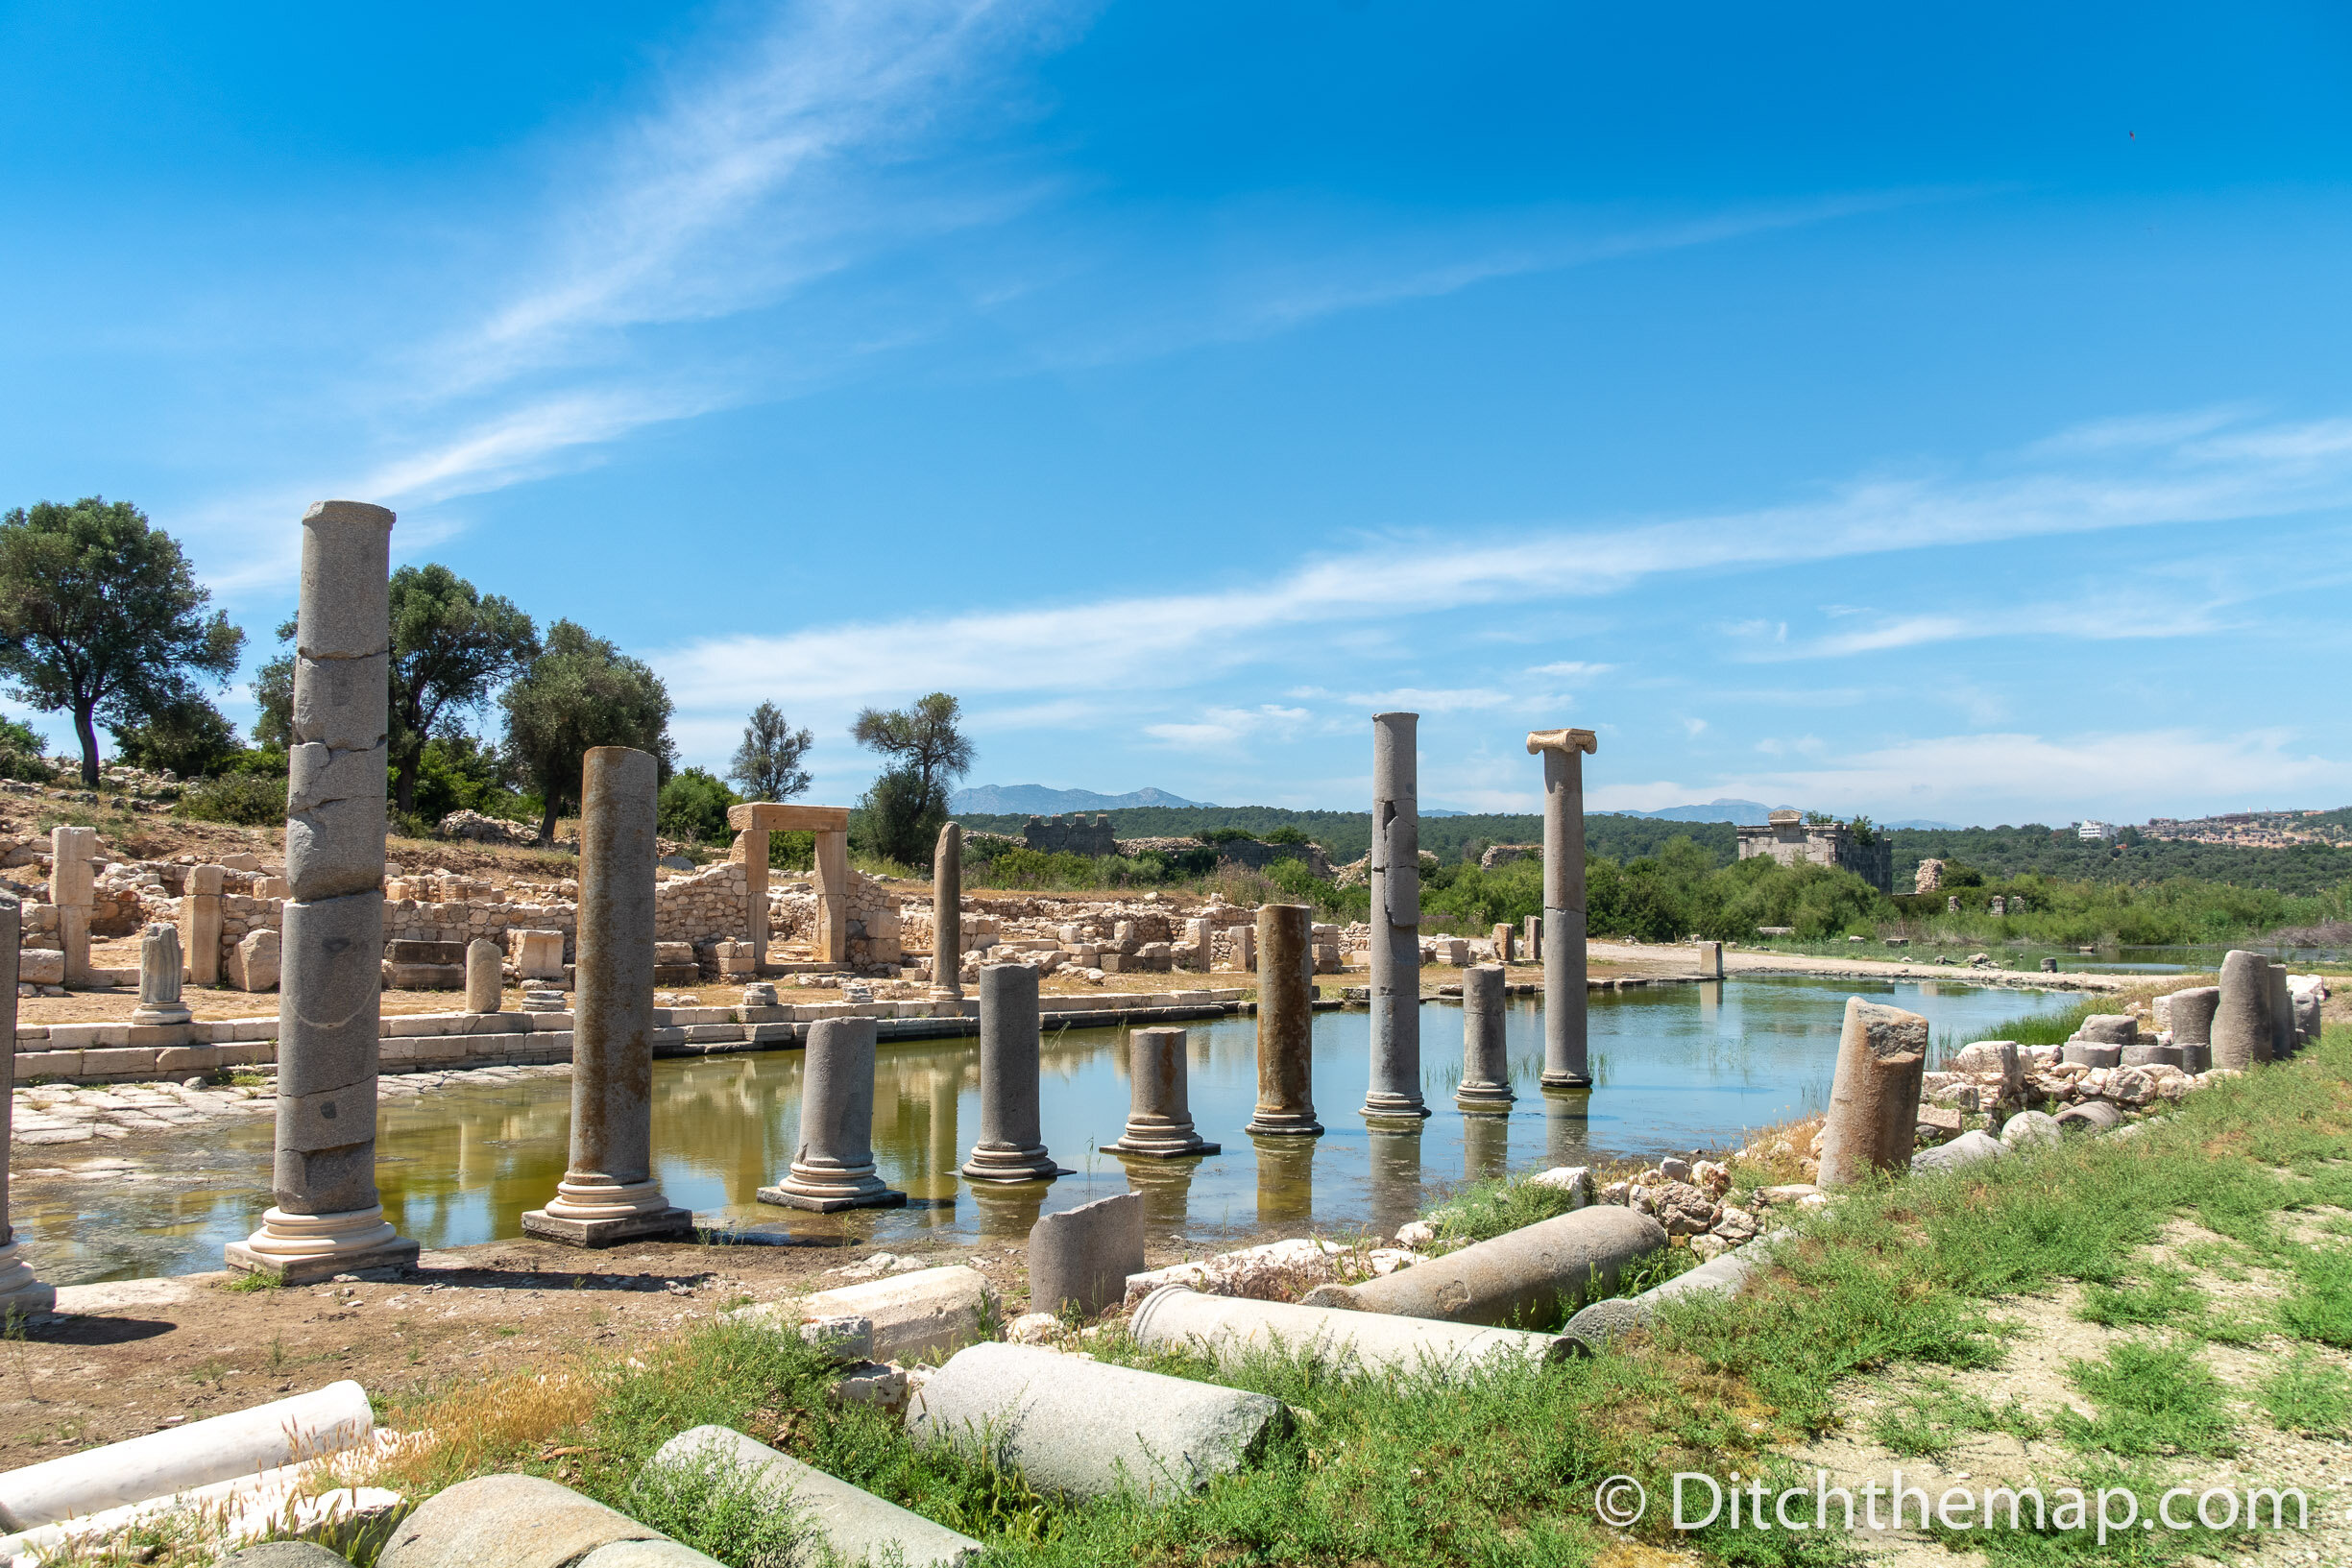 Sighting the ancient ruins of Patara on the southwestern coast of Turkey